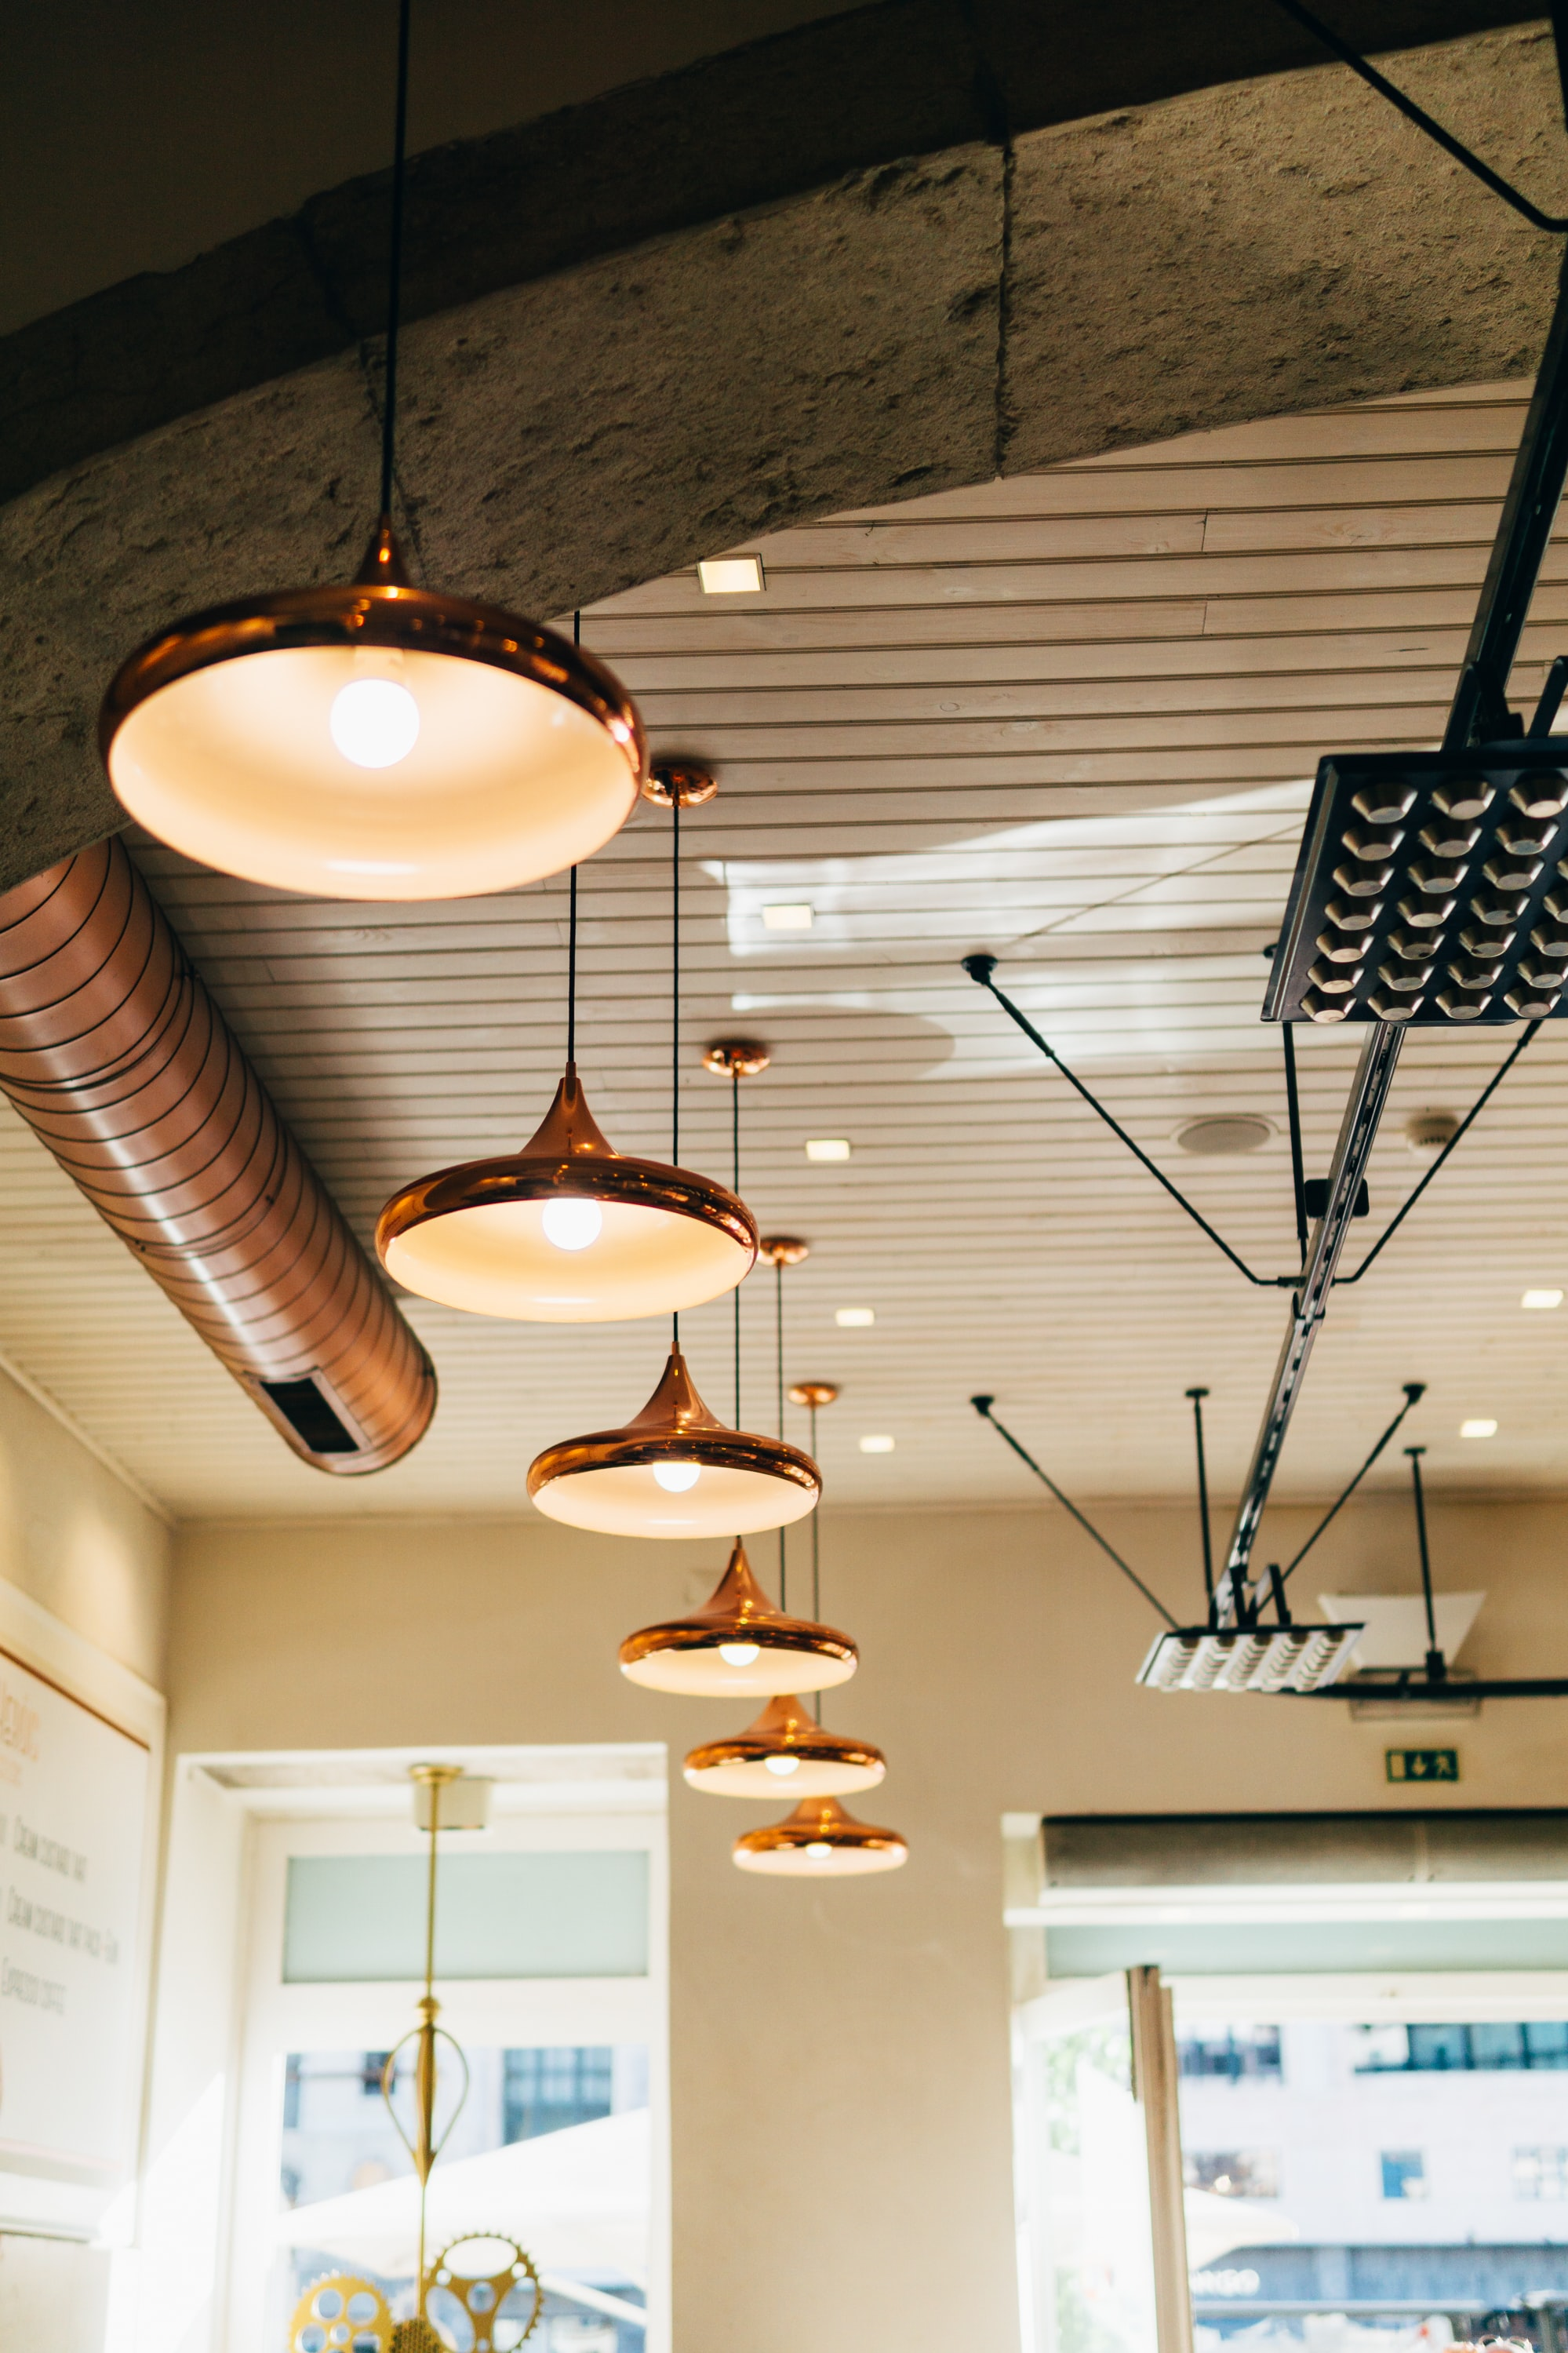 several turned on pendant lamps